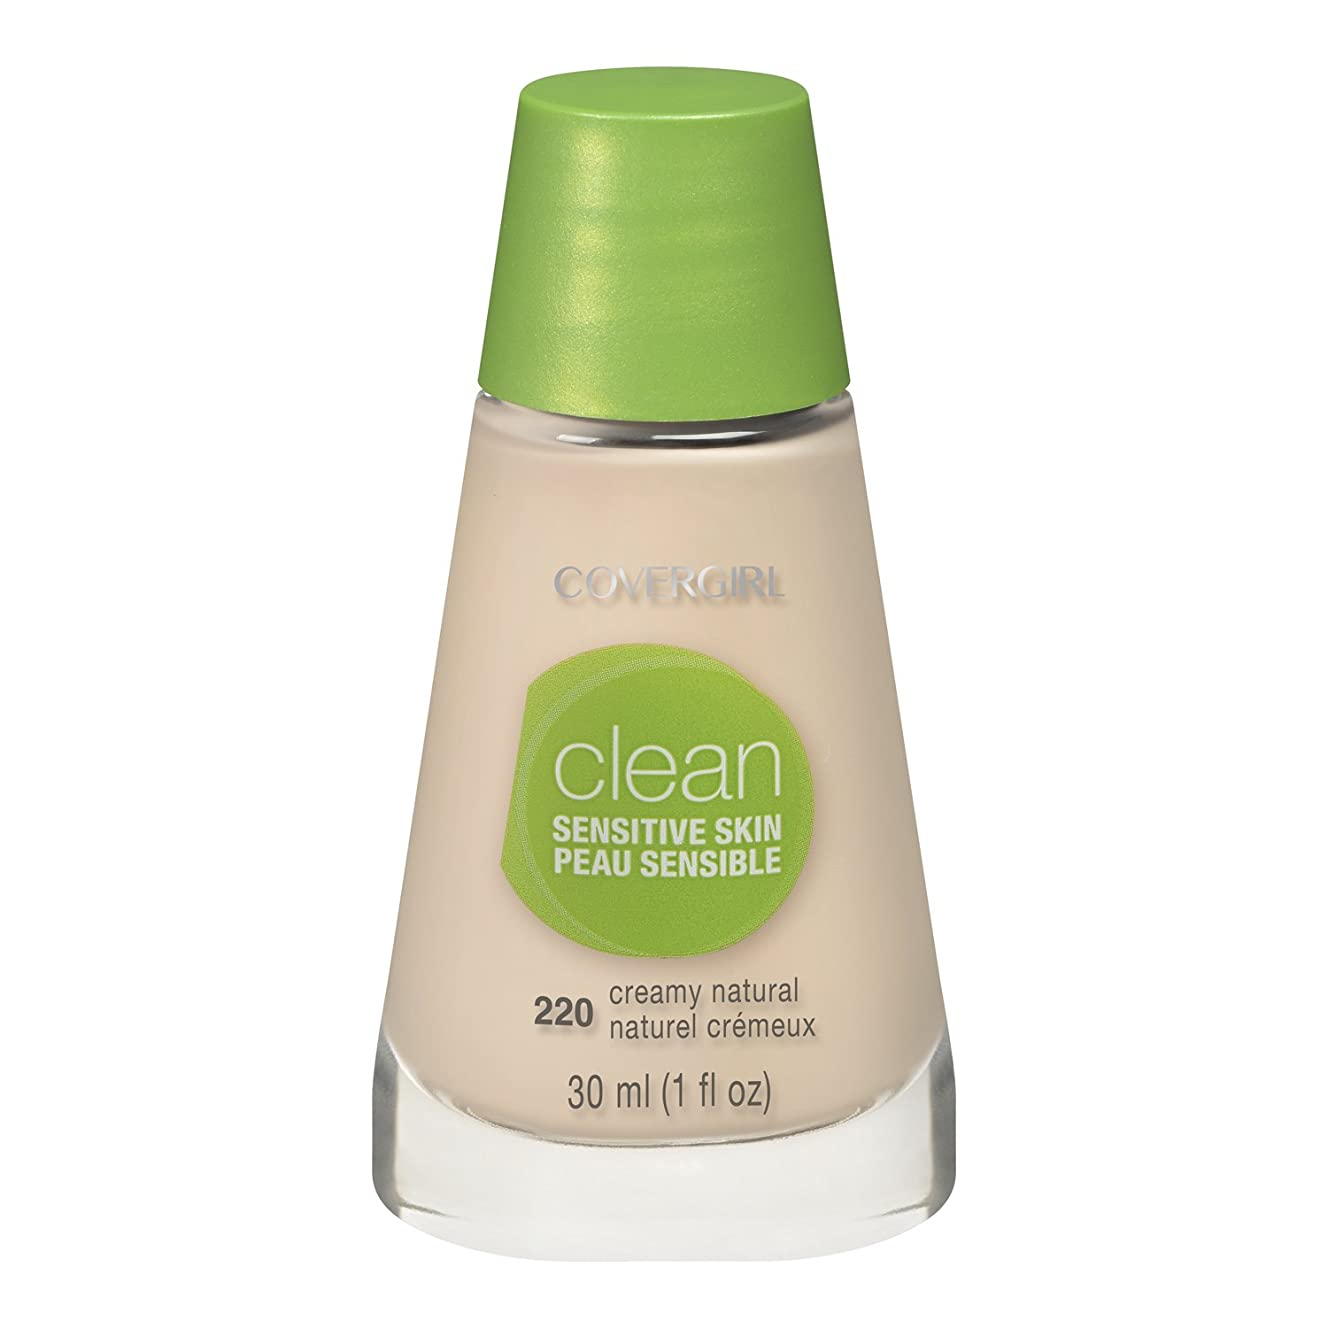 有効化課税現実的COVERGIRL CLEAN SENSITIVE SKIN MAKEUP #220 CREAMY NATURAL